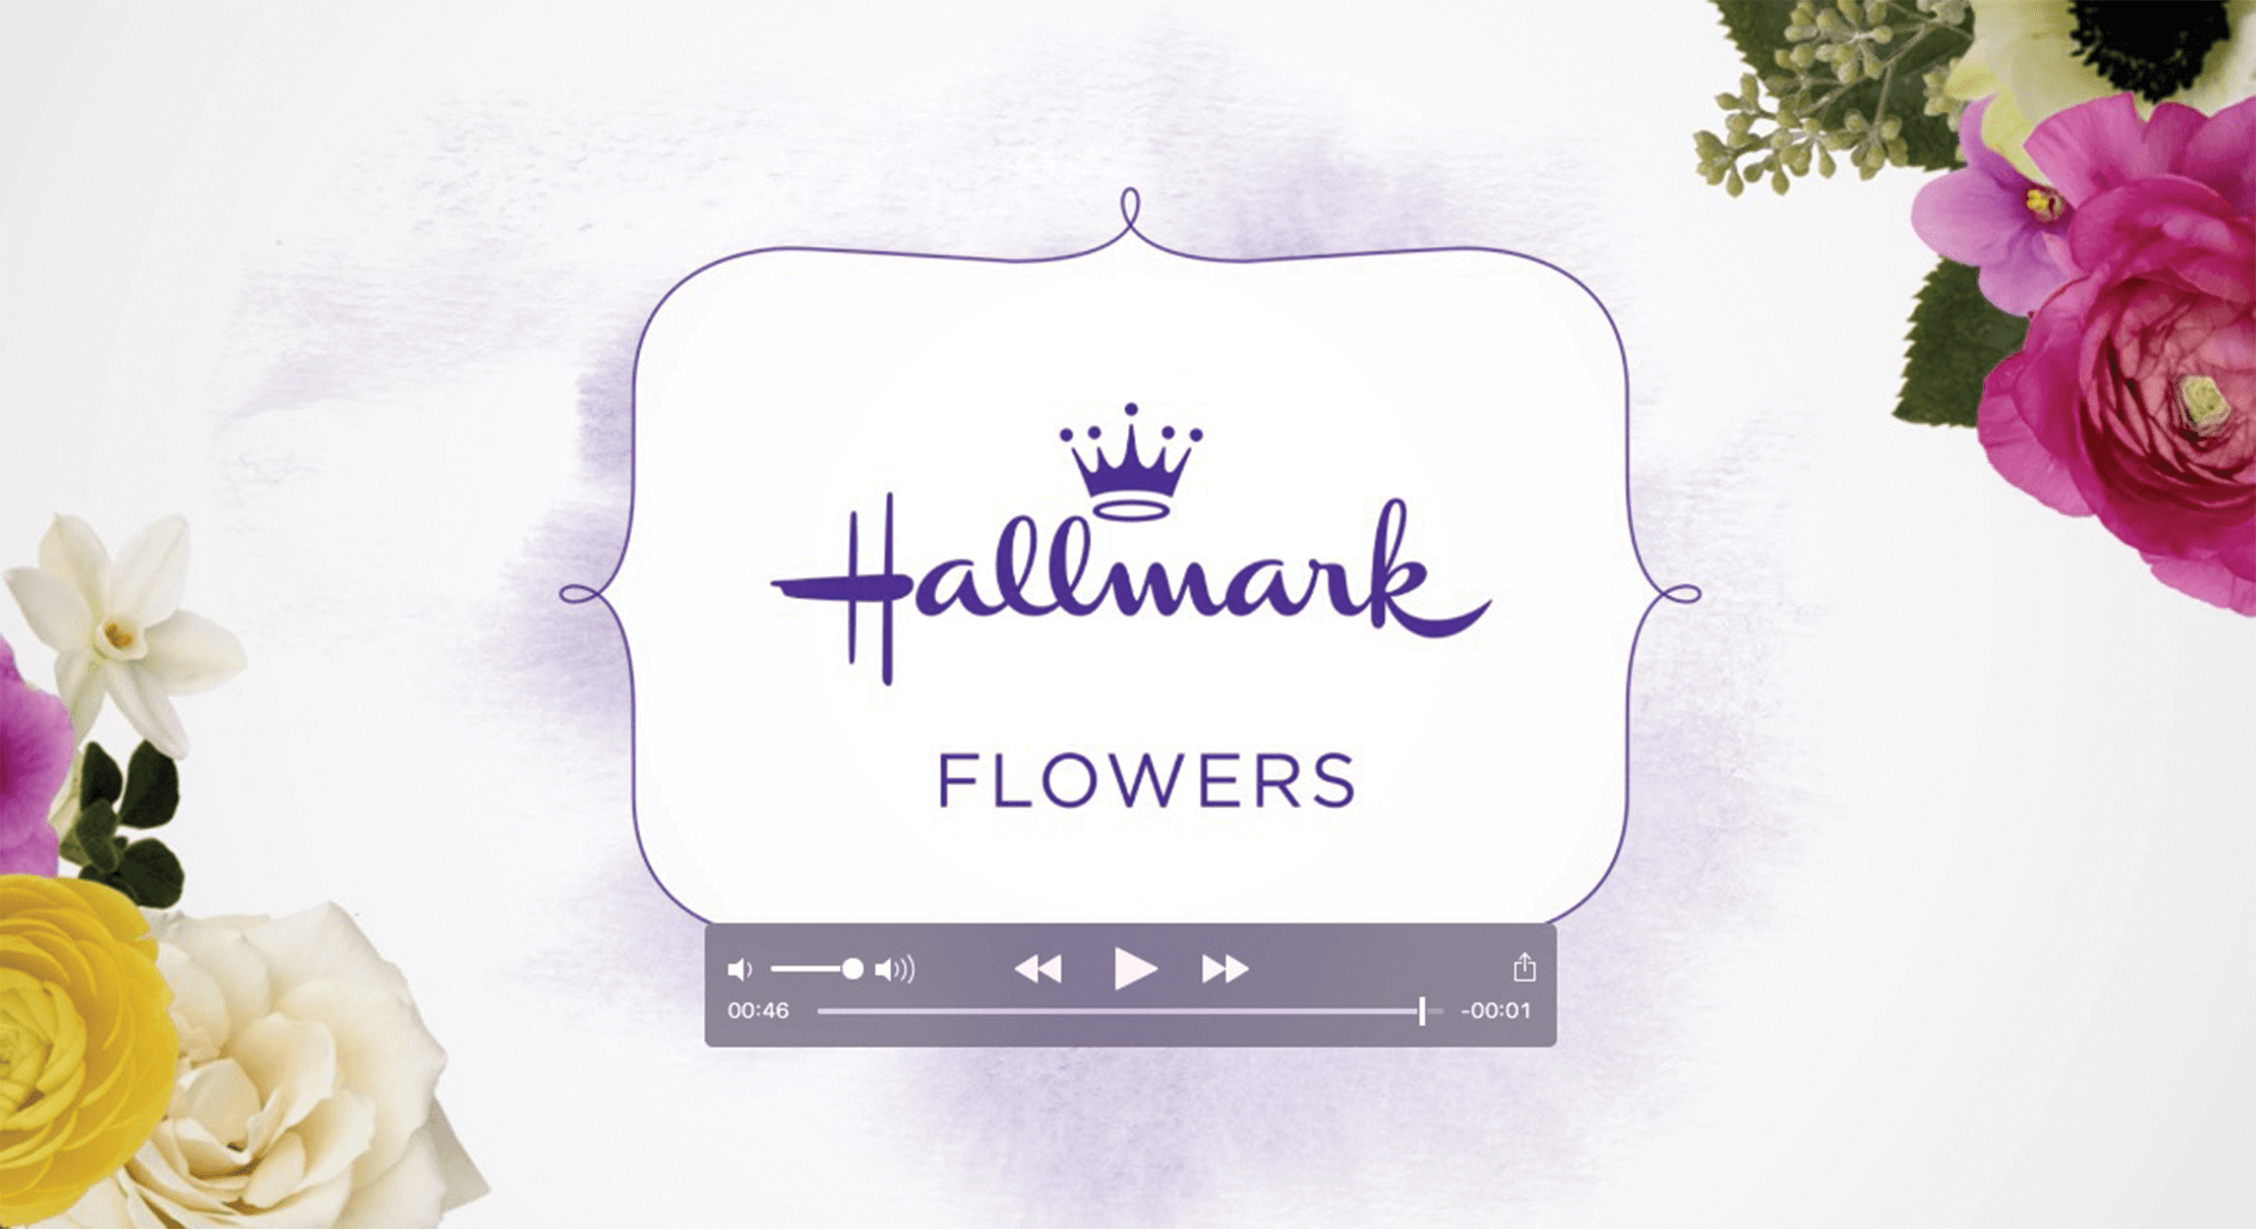 Video of Hallmark Flowers